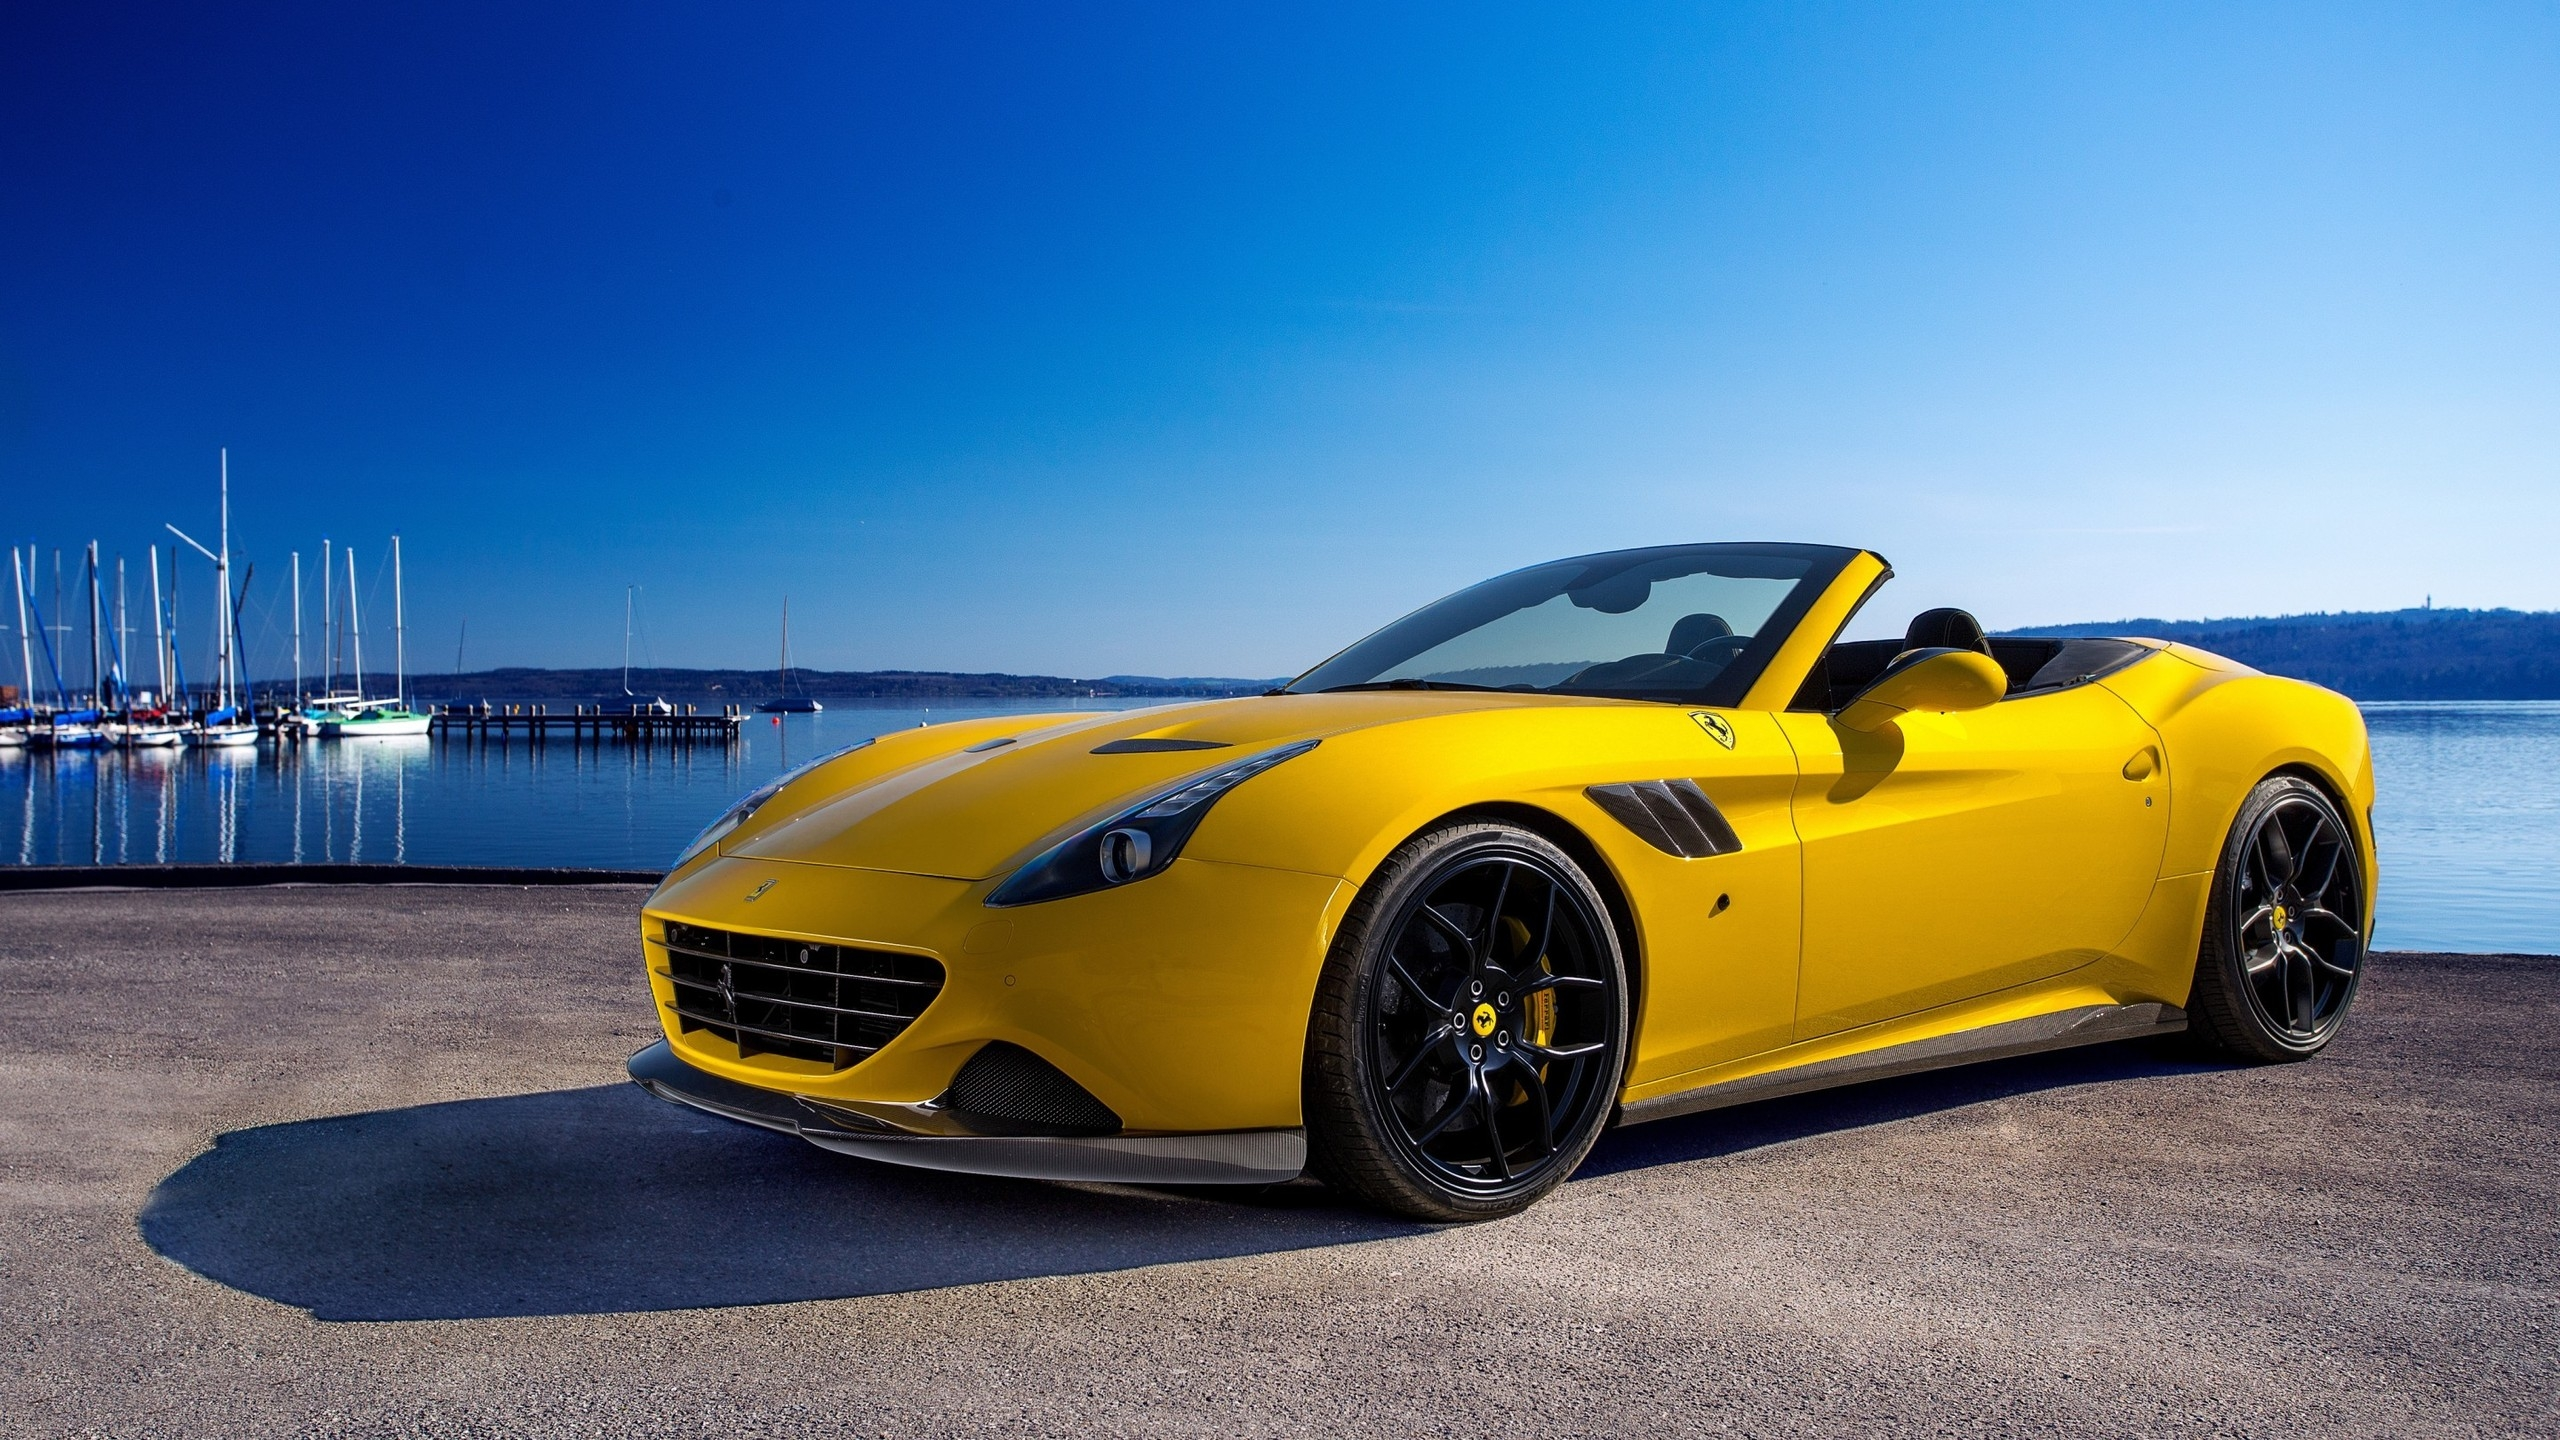 2016 ferrari california t vs 2009 california what is new. Black Bedroom Furniture Sets. Home Design Ideas